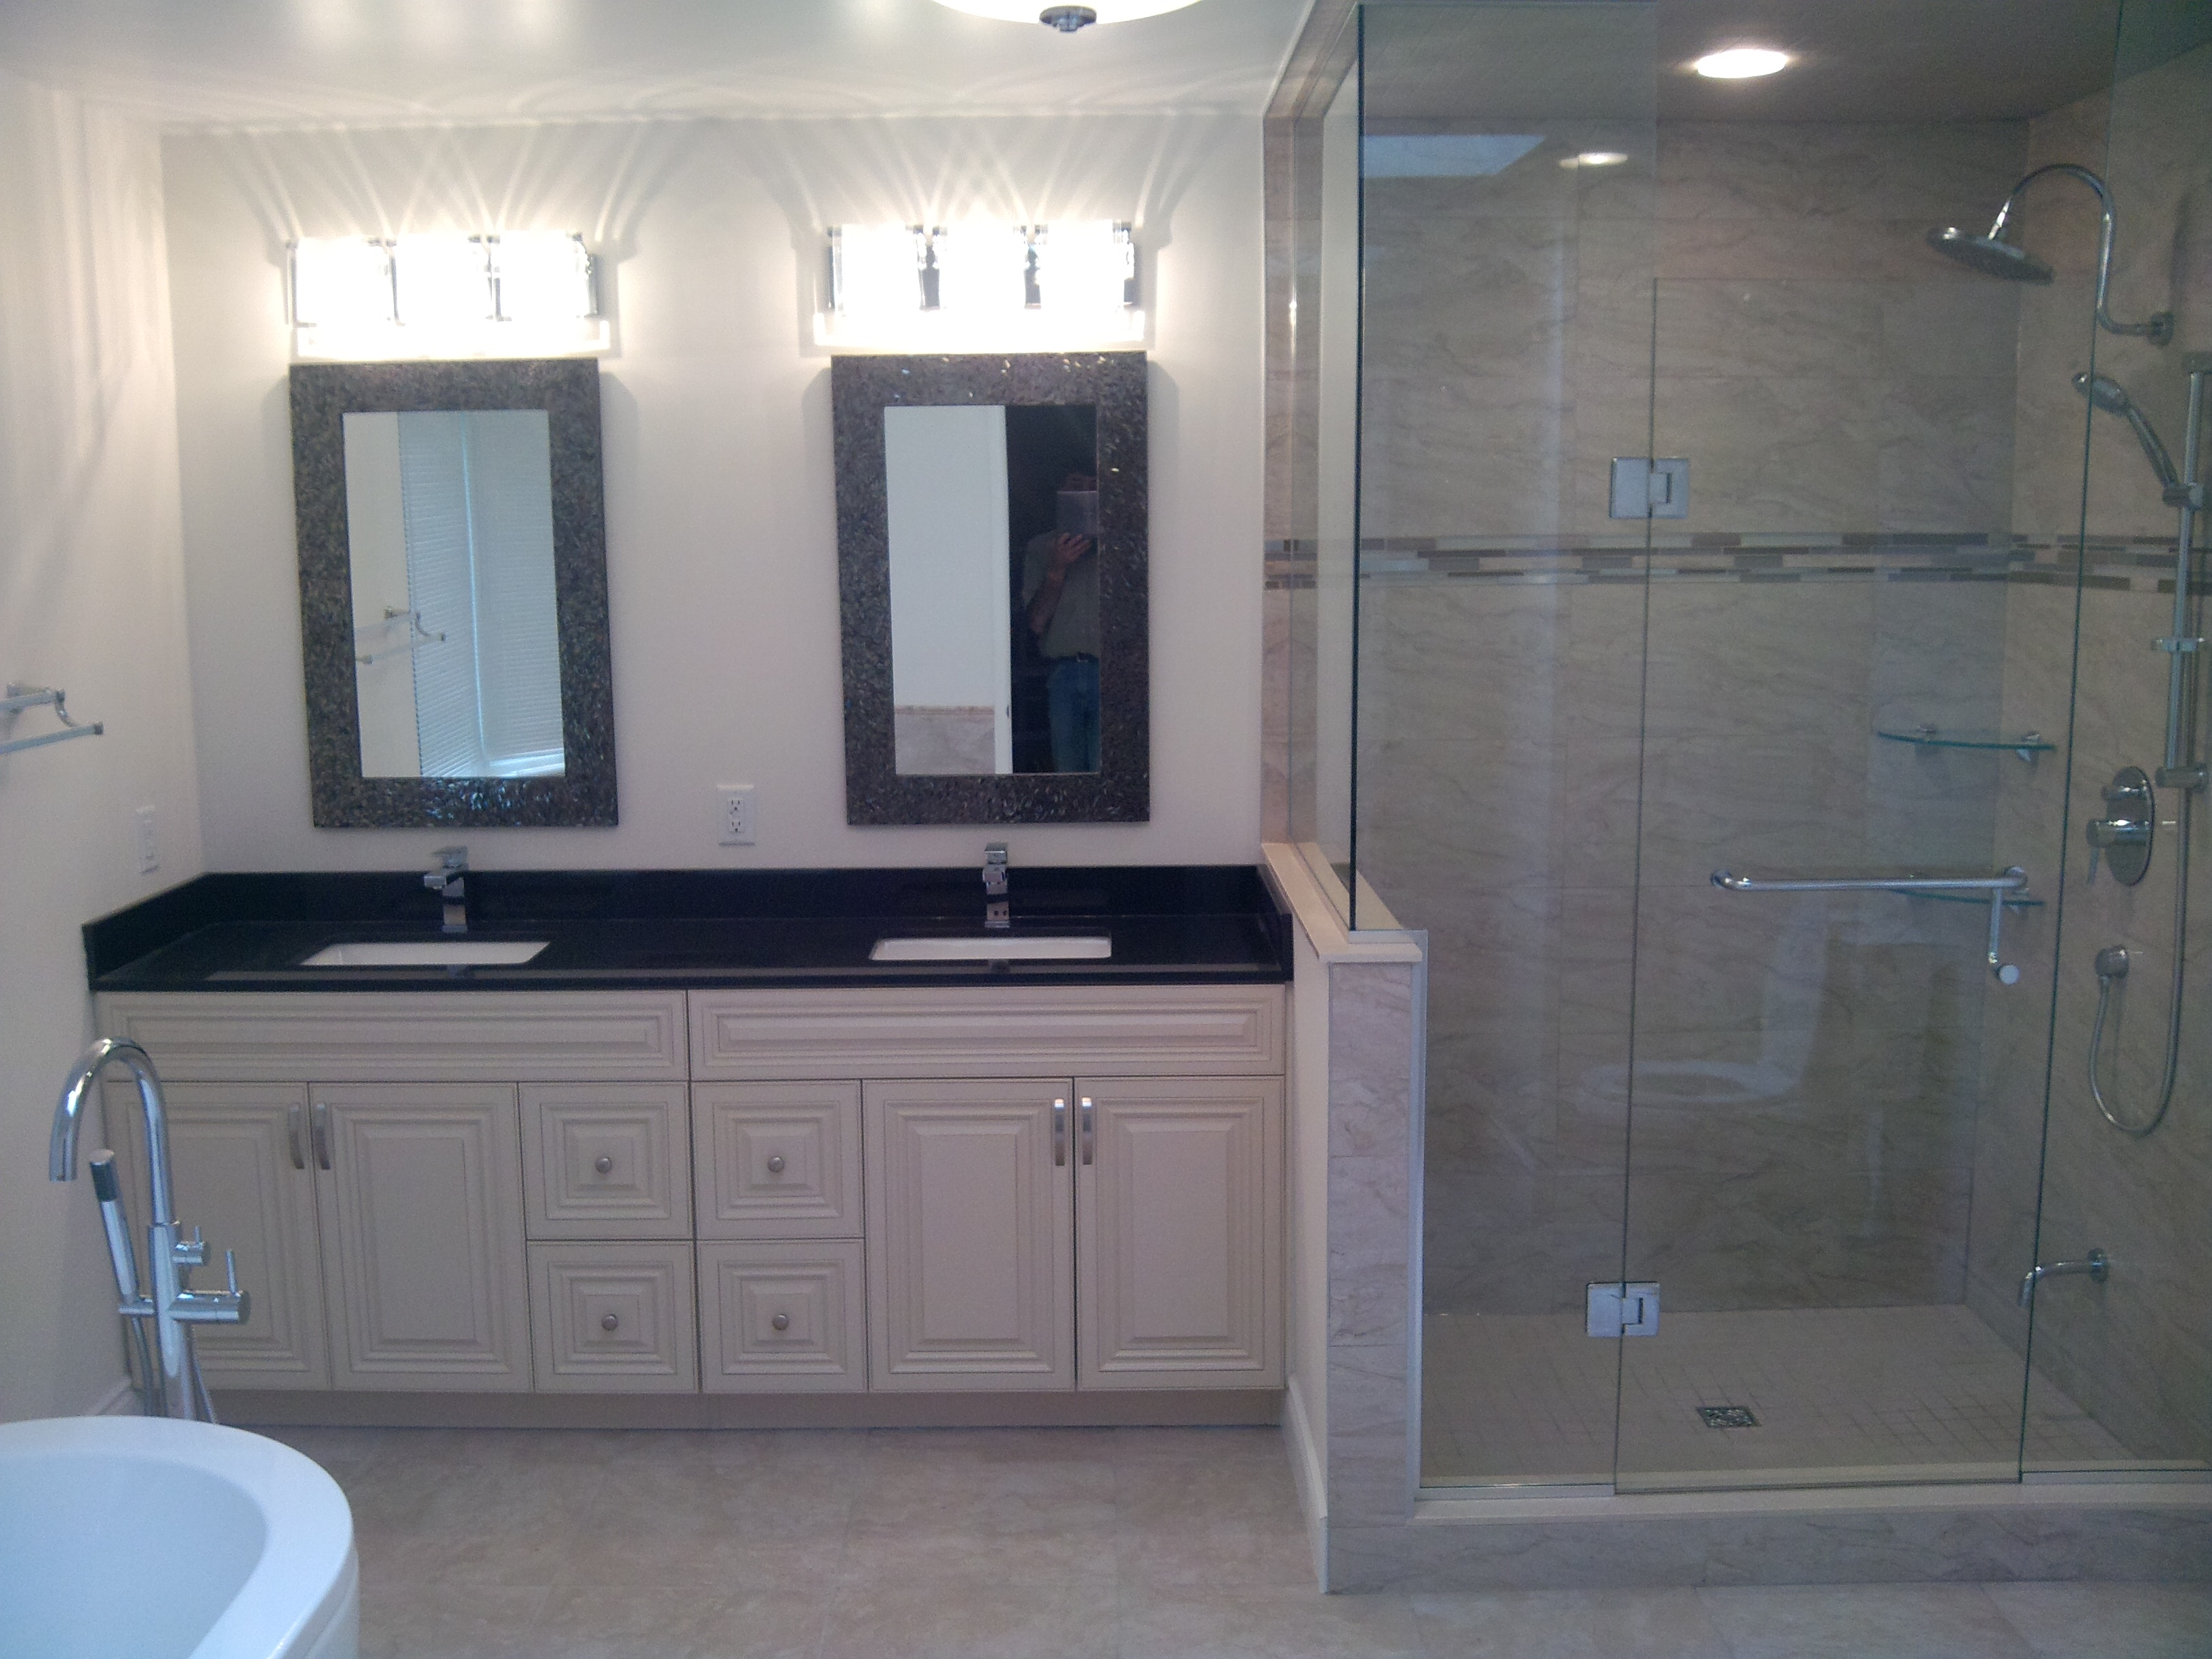 How to prepare for bathroom remodeling renovations bath boys How long does a bathroom renovation take